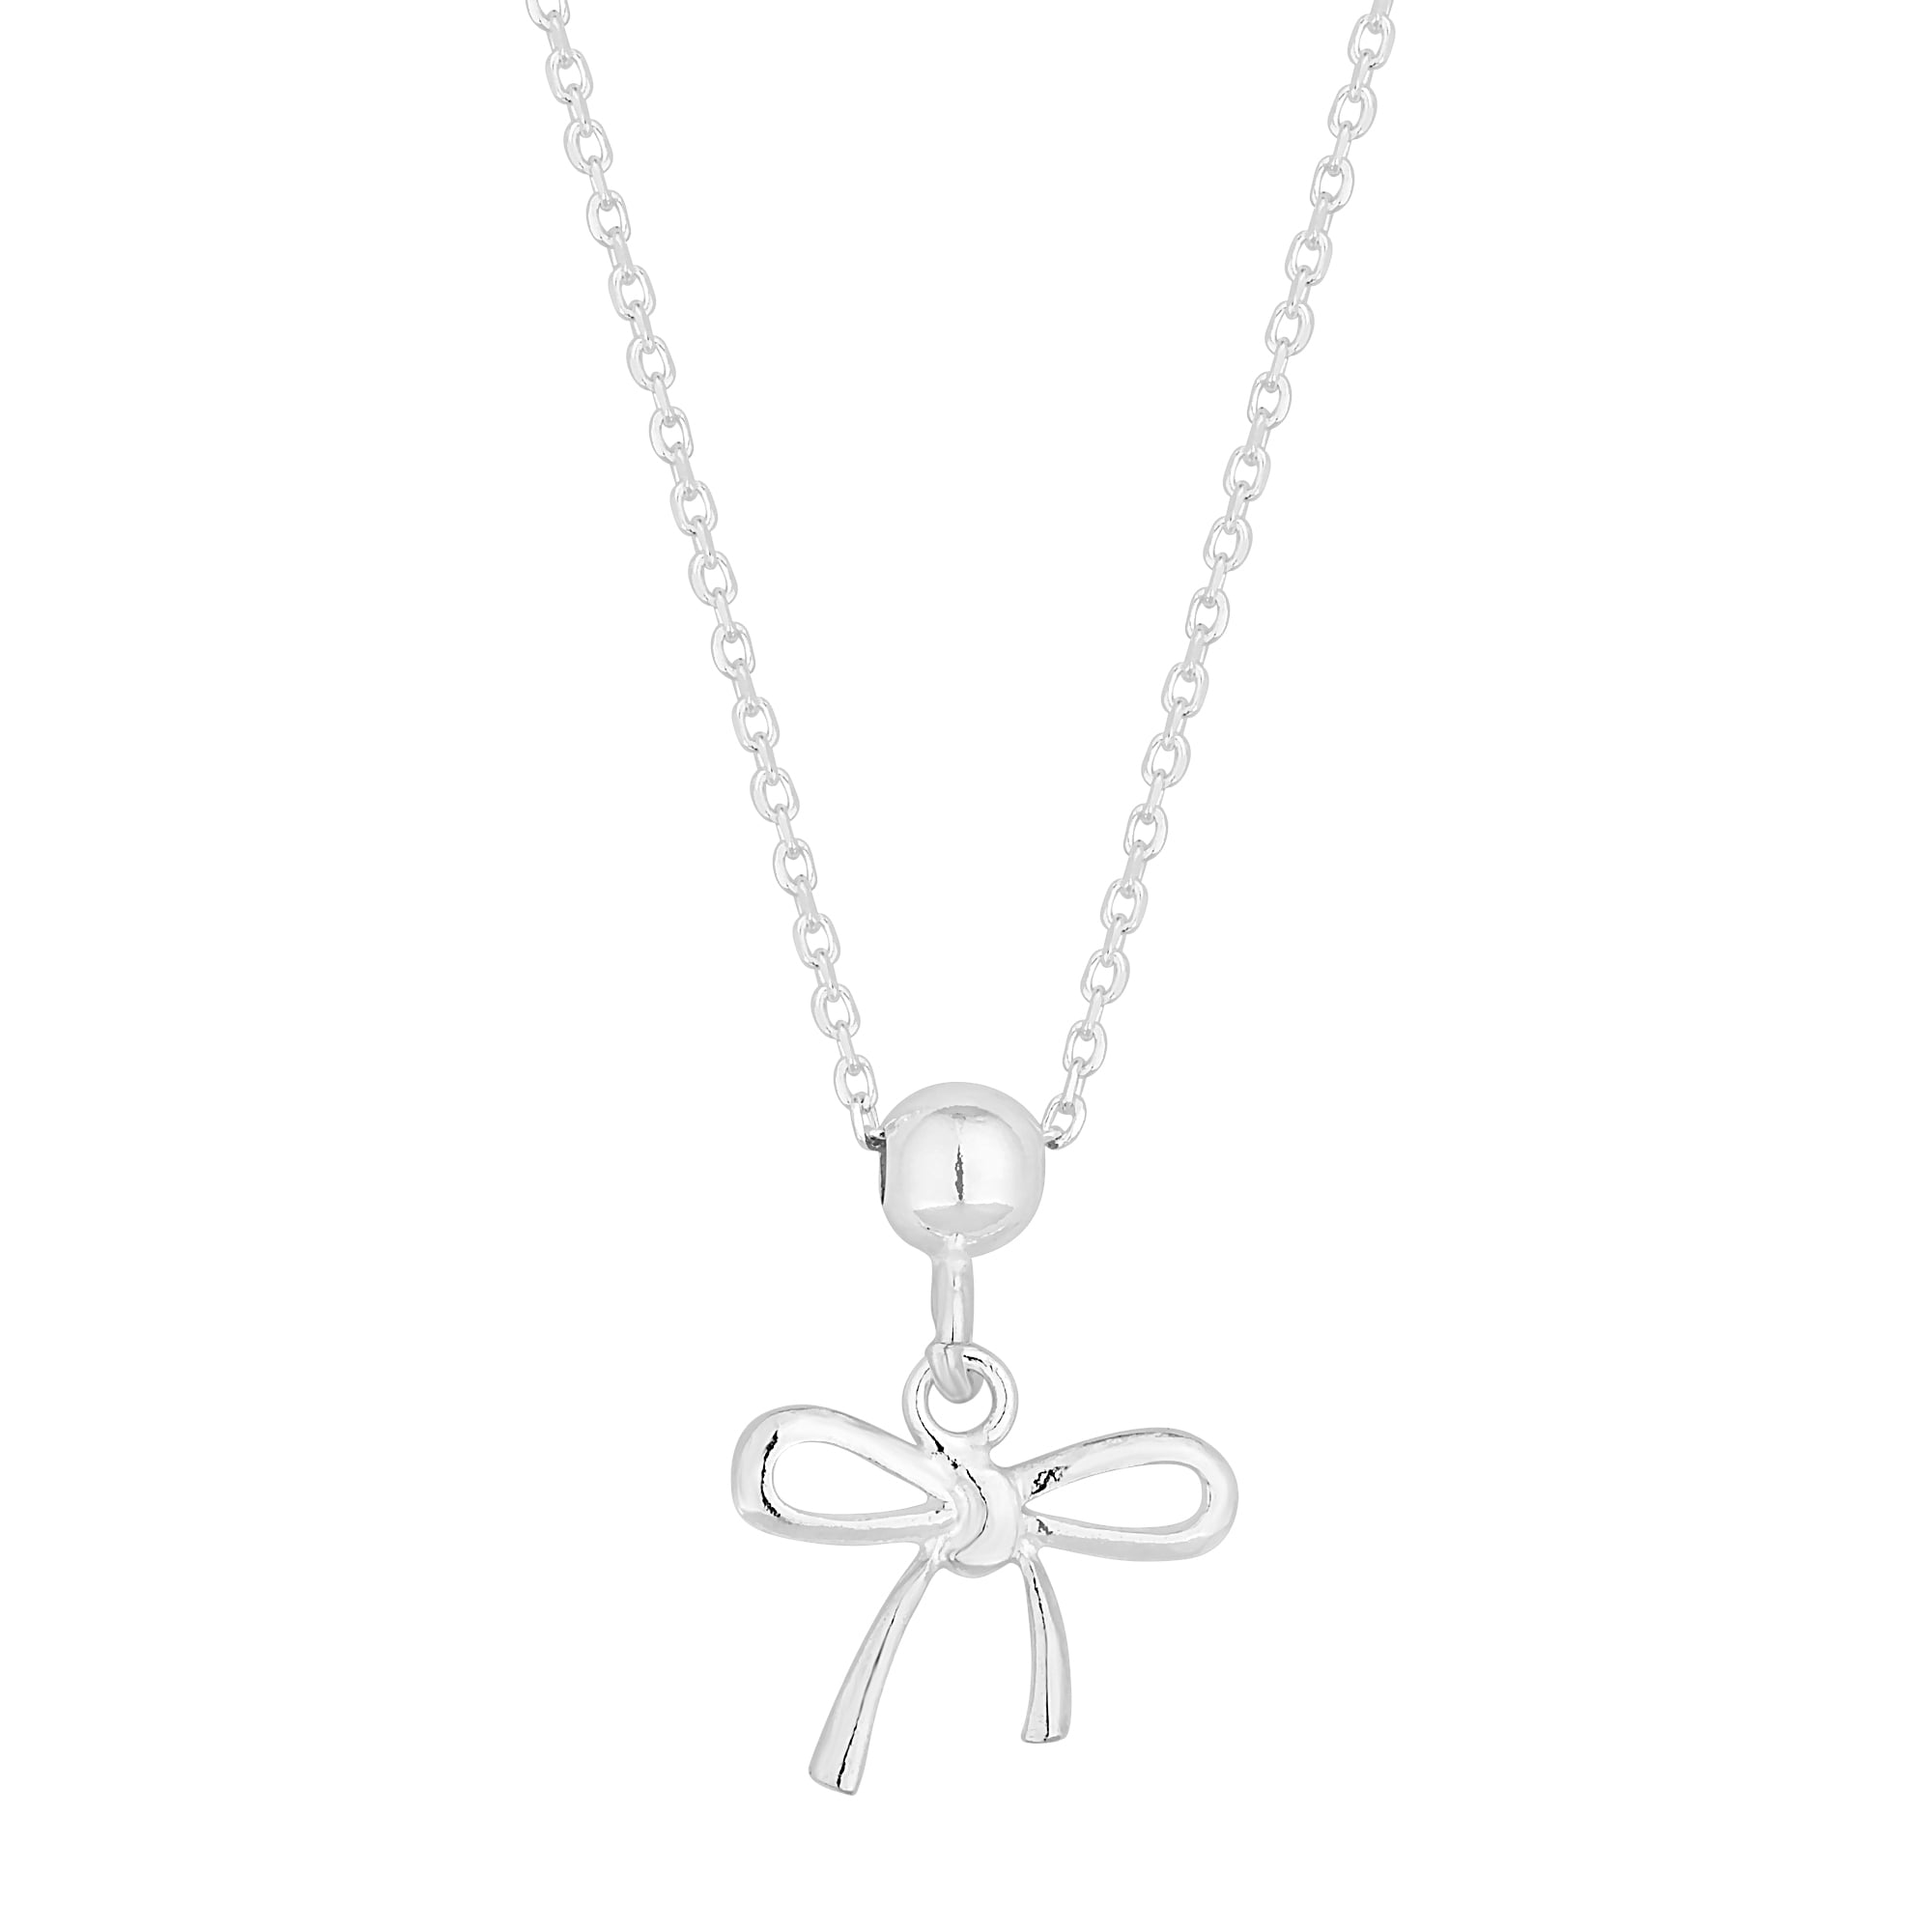 enlarged necklaces bow necklace products christian dior jewelry crystal pendant